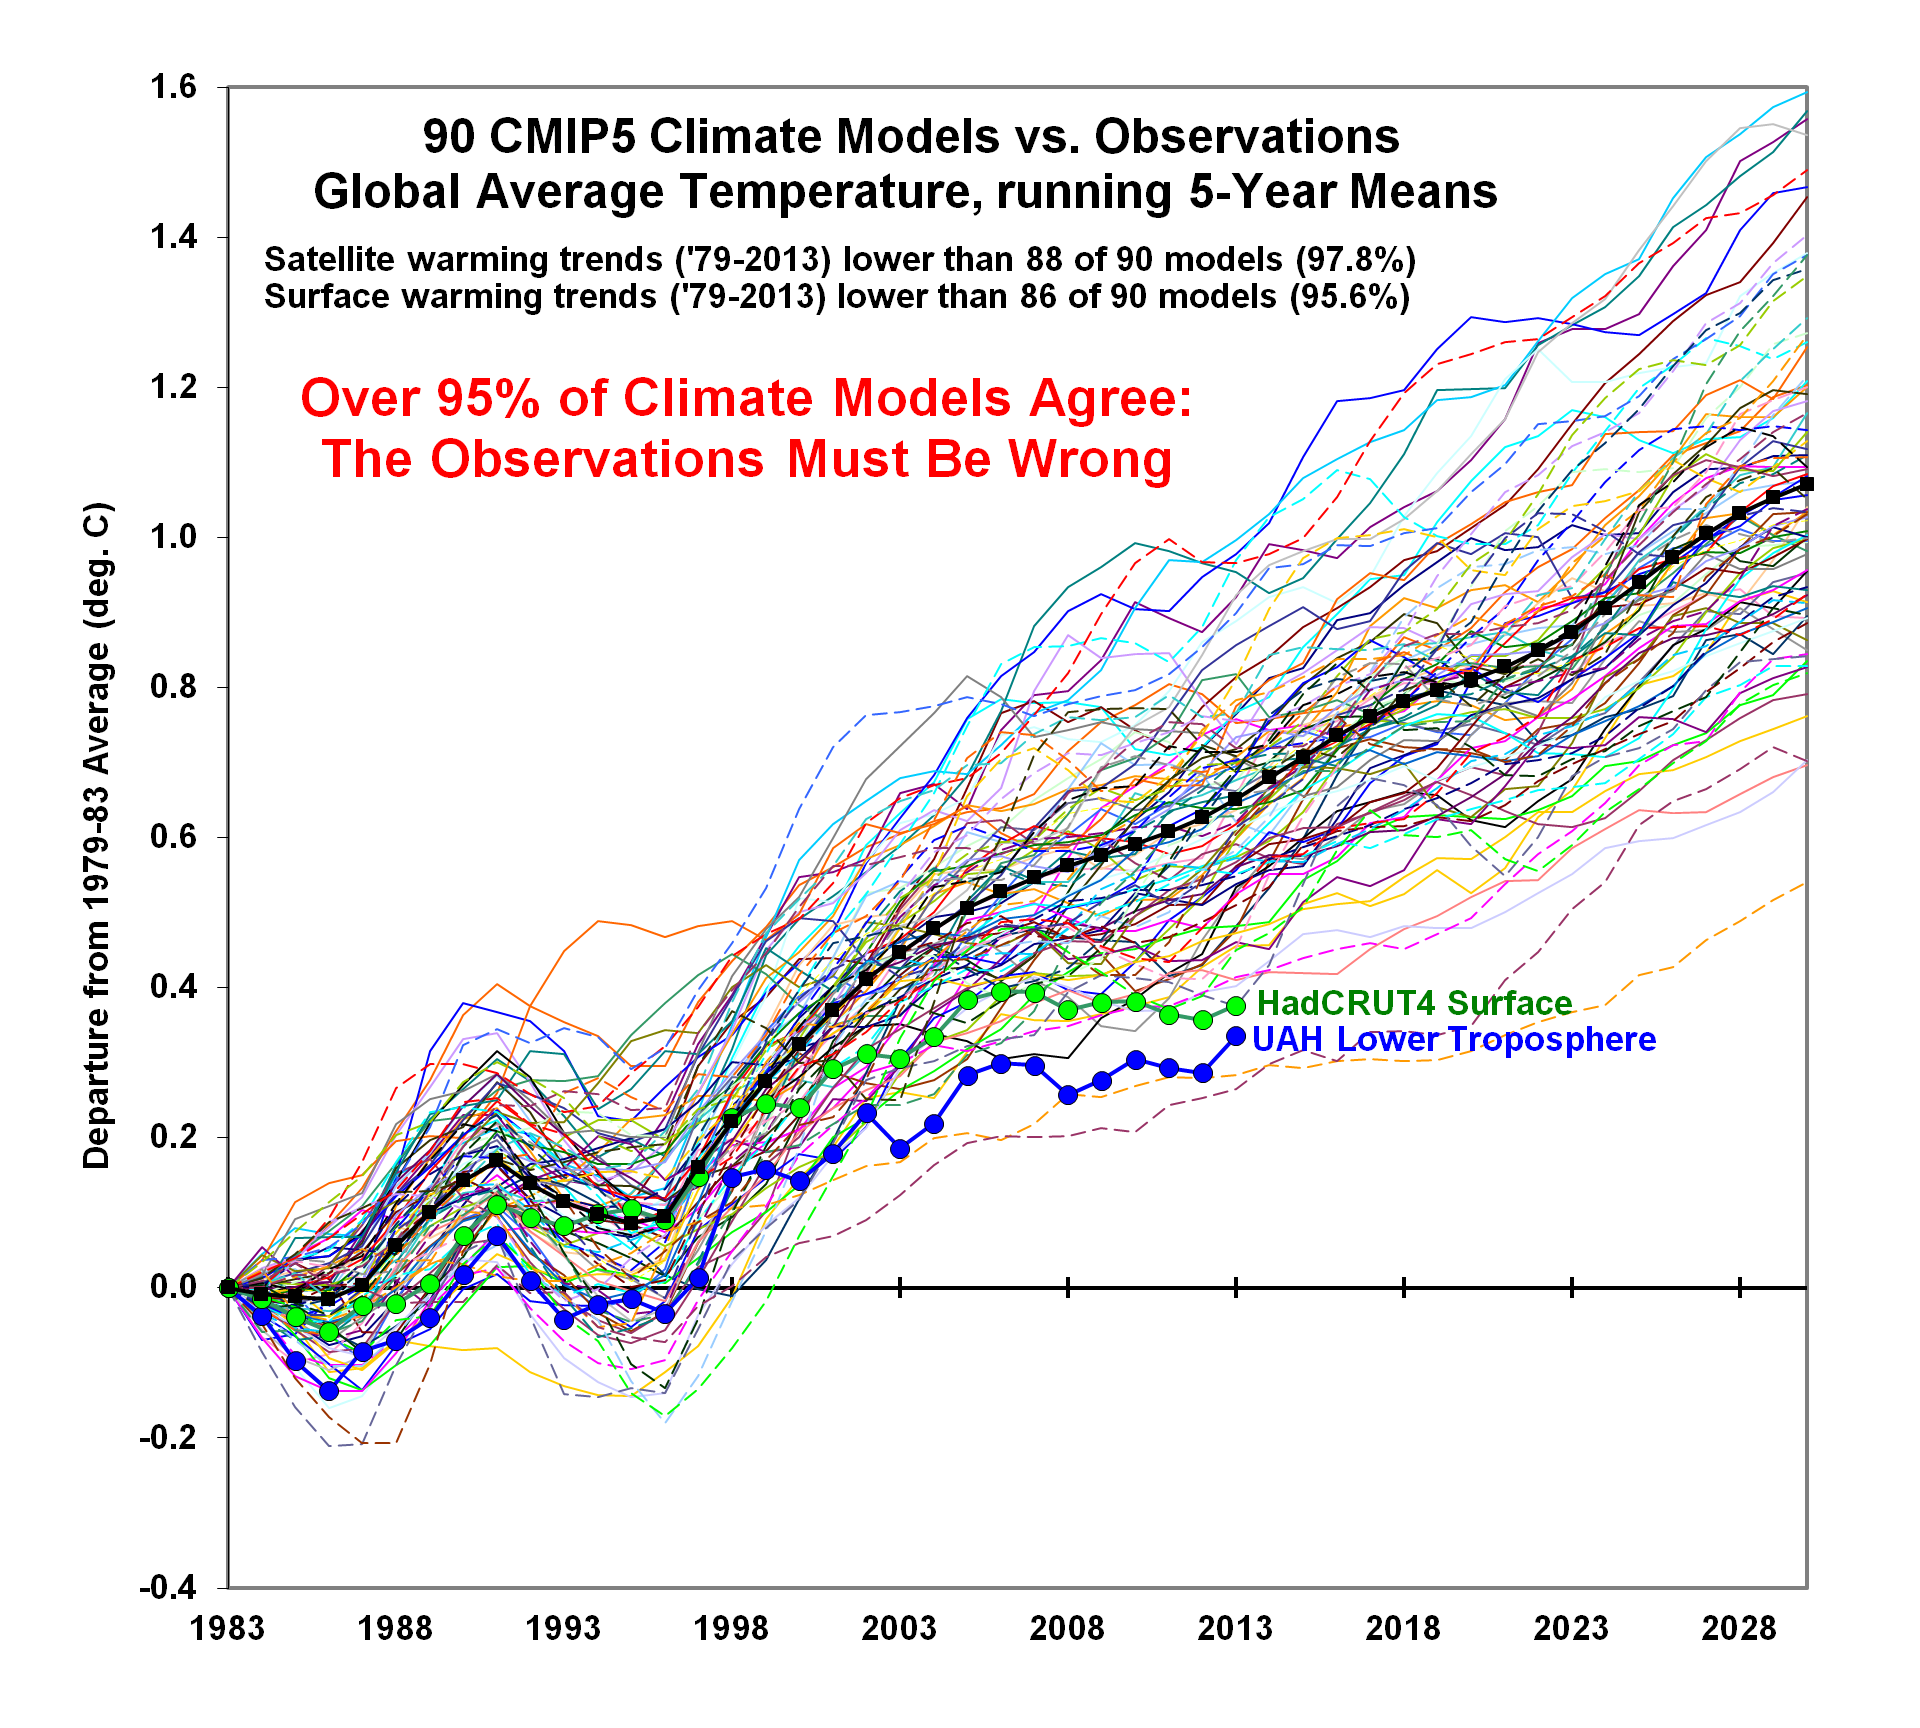 http://thefederalist.com/wp-content/uploads/2014/05/Climate-Model-Comparison.png